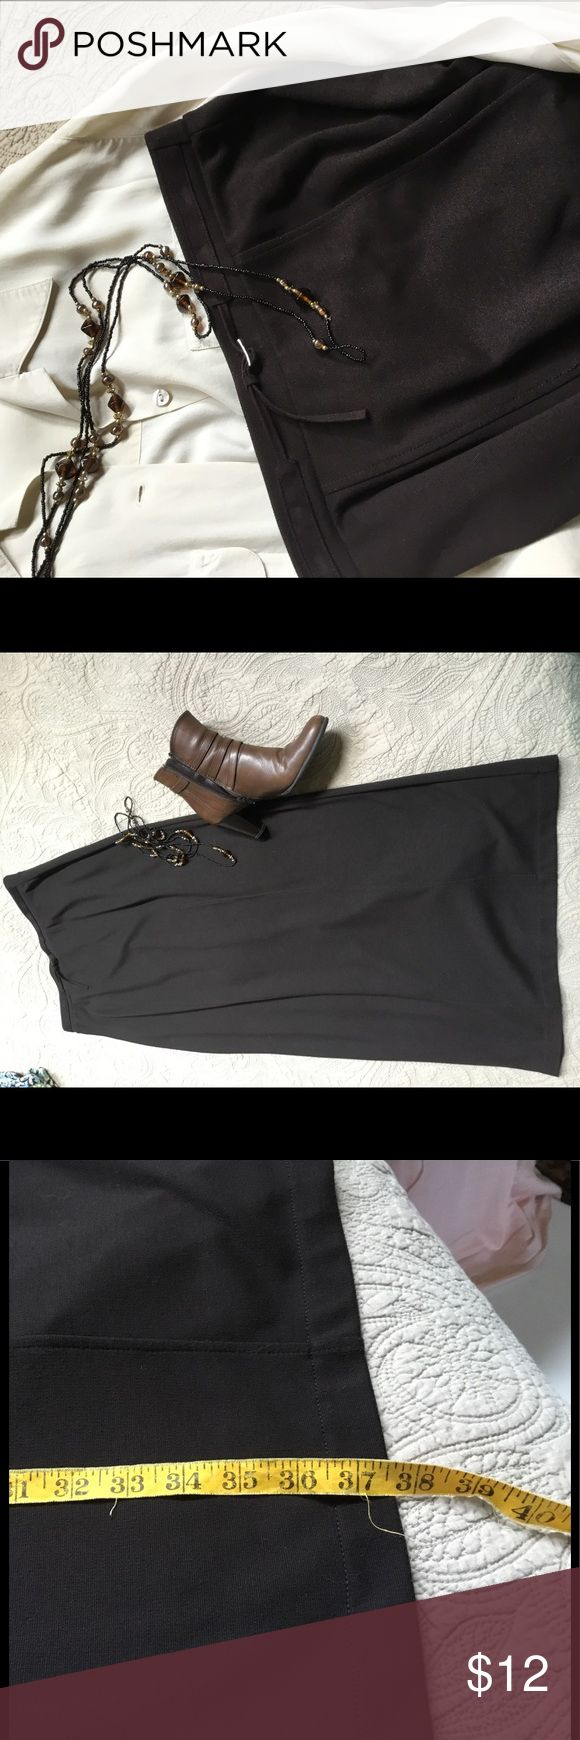 """Emma James for Liz Claiborne brown maxi Comfortable knit dark brown maxi that looks great with boots or heels. Built in """"belt,"""" flattering seaming on front and kick pleat in back. One small area where the stitching looks missed, see photo. Good condition. Emma James Skirts Maxi"""